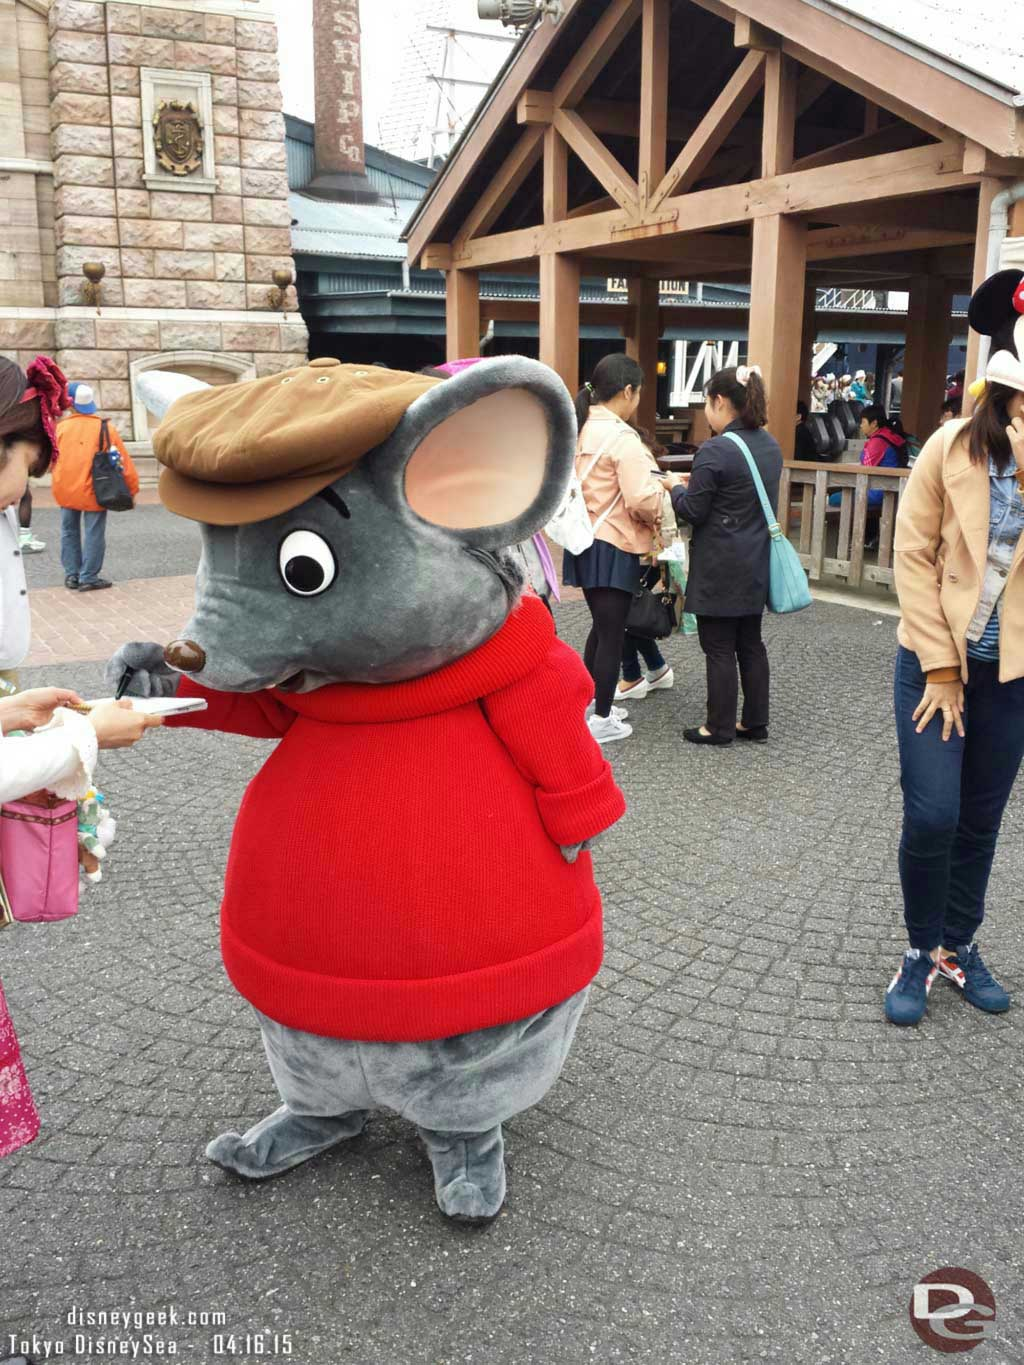 Bernard from the Rescuers out in the American Waterfront #TokyoDisneySea